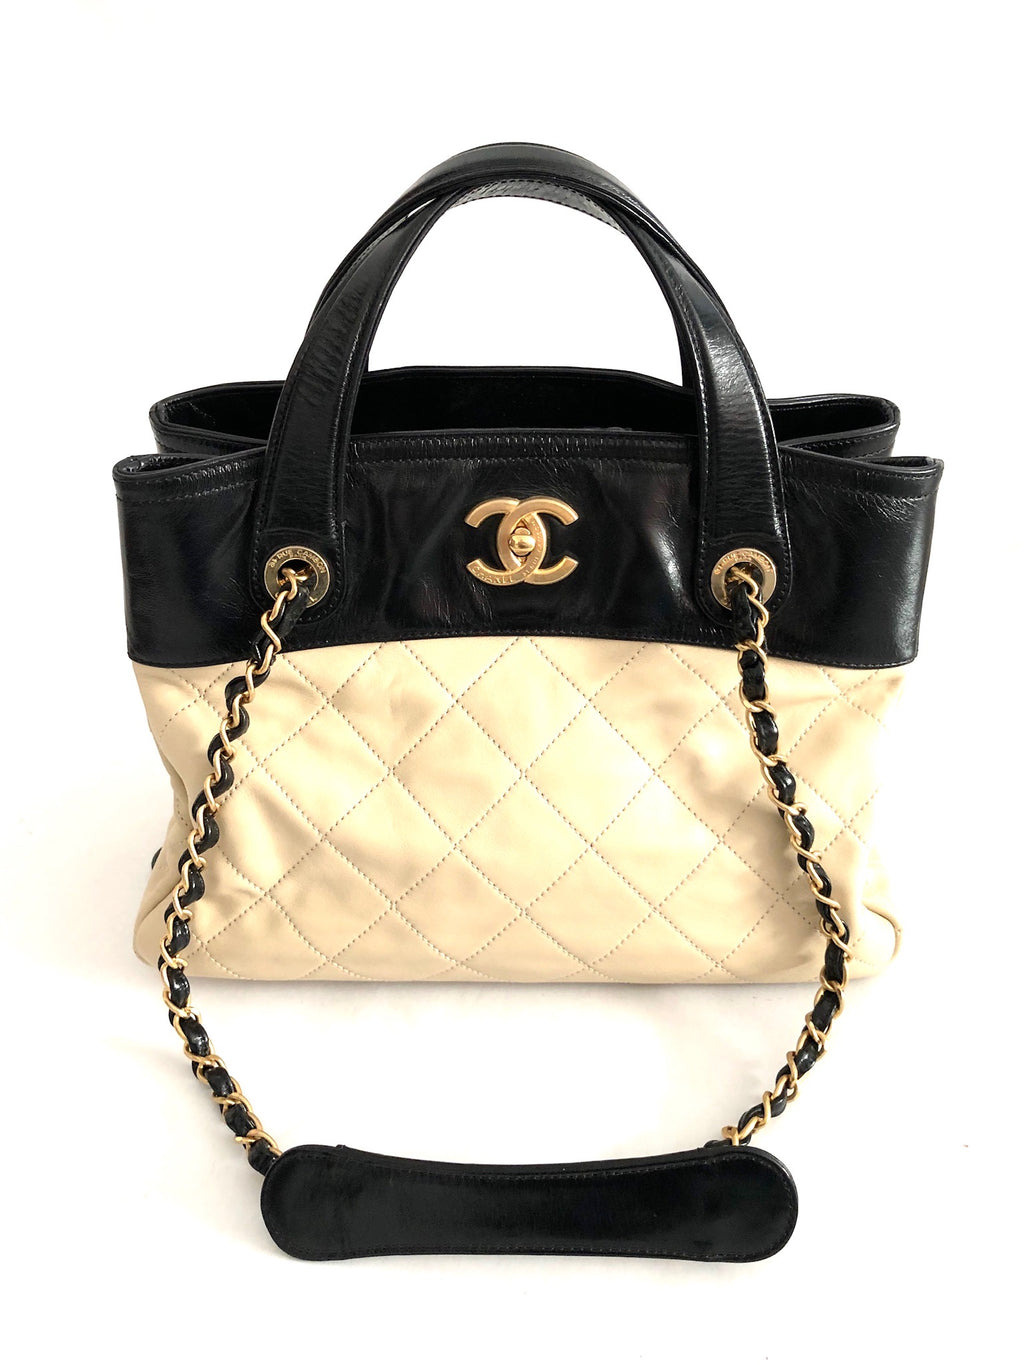 Chanel Quilted In The Mix Tote Cream Leather Shoulder Bag